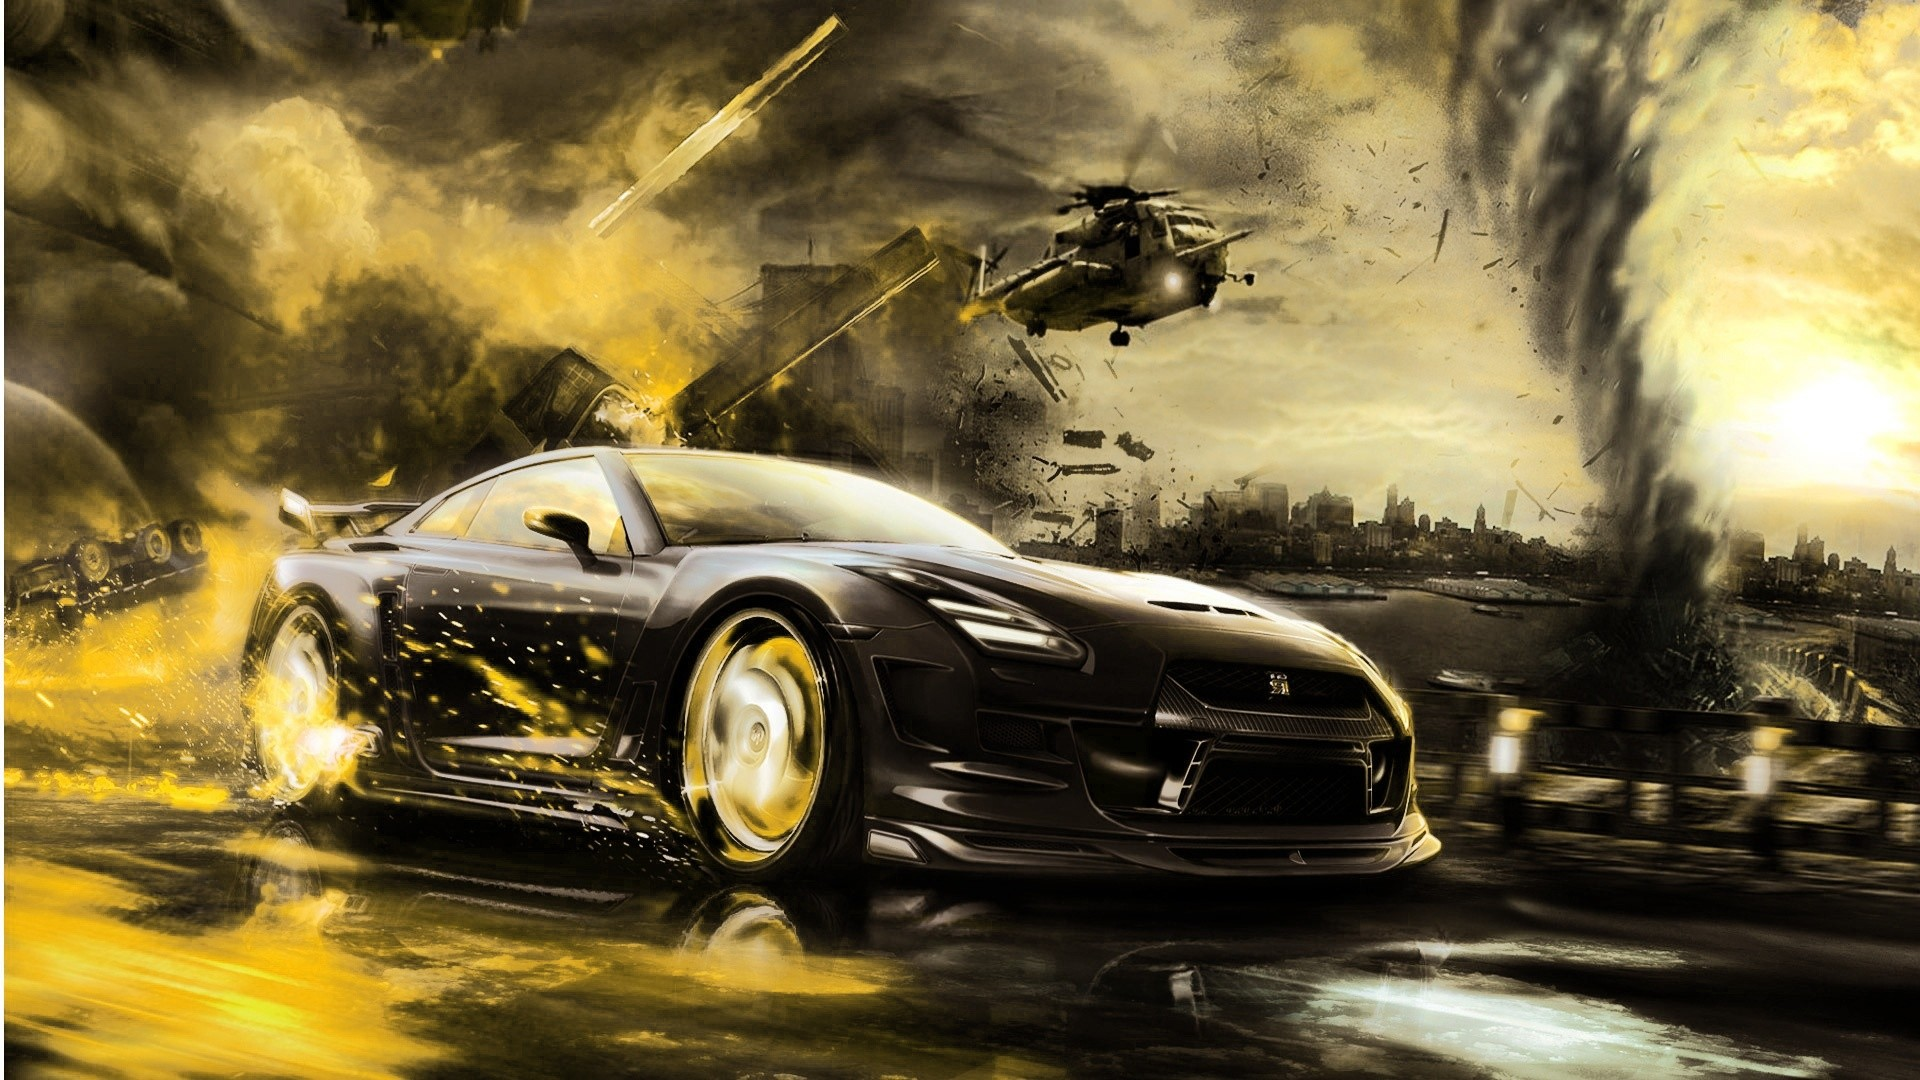 1920x1080 Car Hd Wallpapers 1080p Awesome Collection